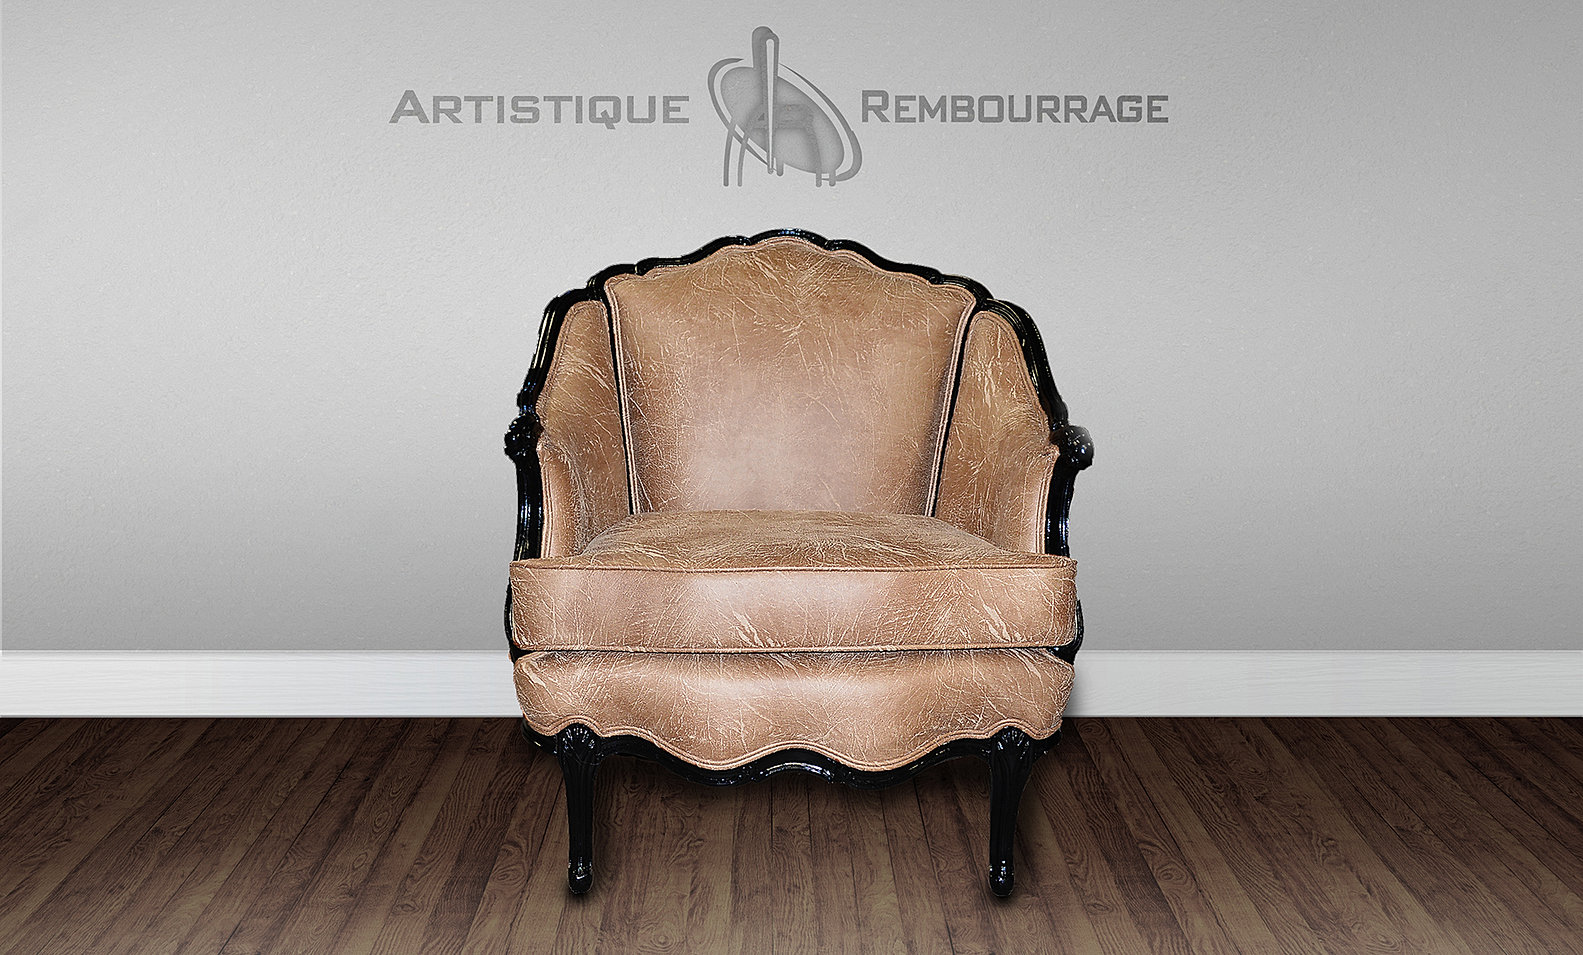 artistique rembourrage acceuil. Black Bedroom Furniture Sets. Home Design Ideas